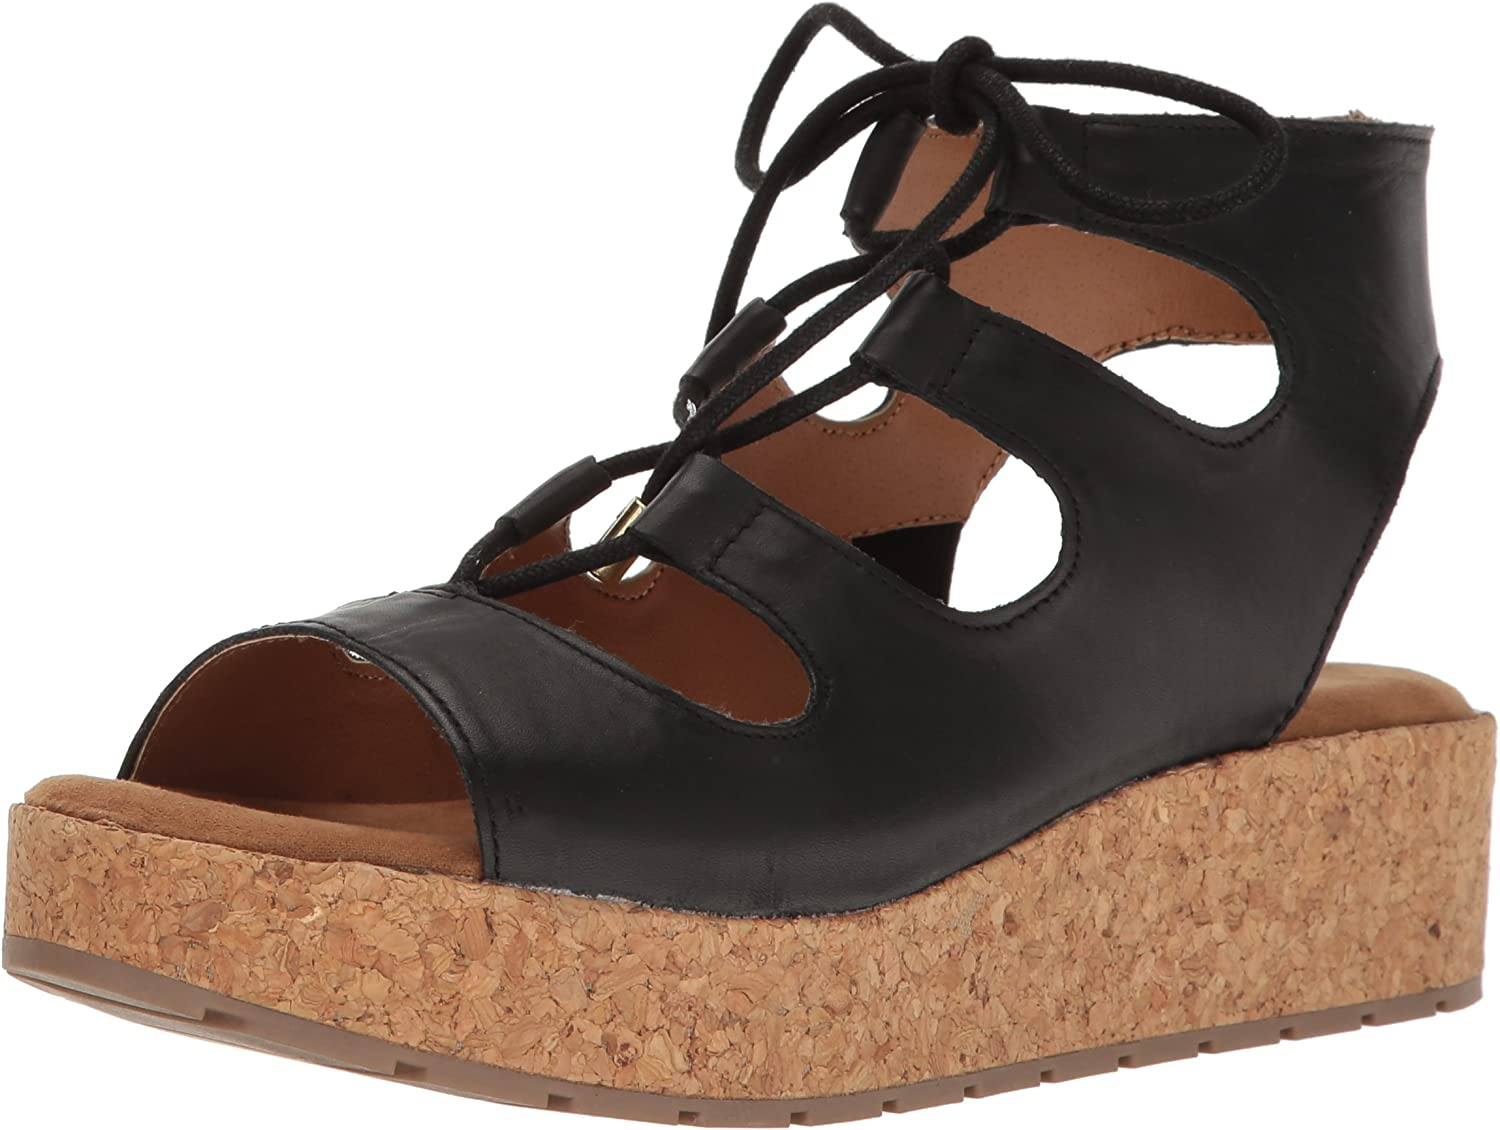 Kenneth Cole REACTION Womens Calm Night Platform Sandal